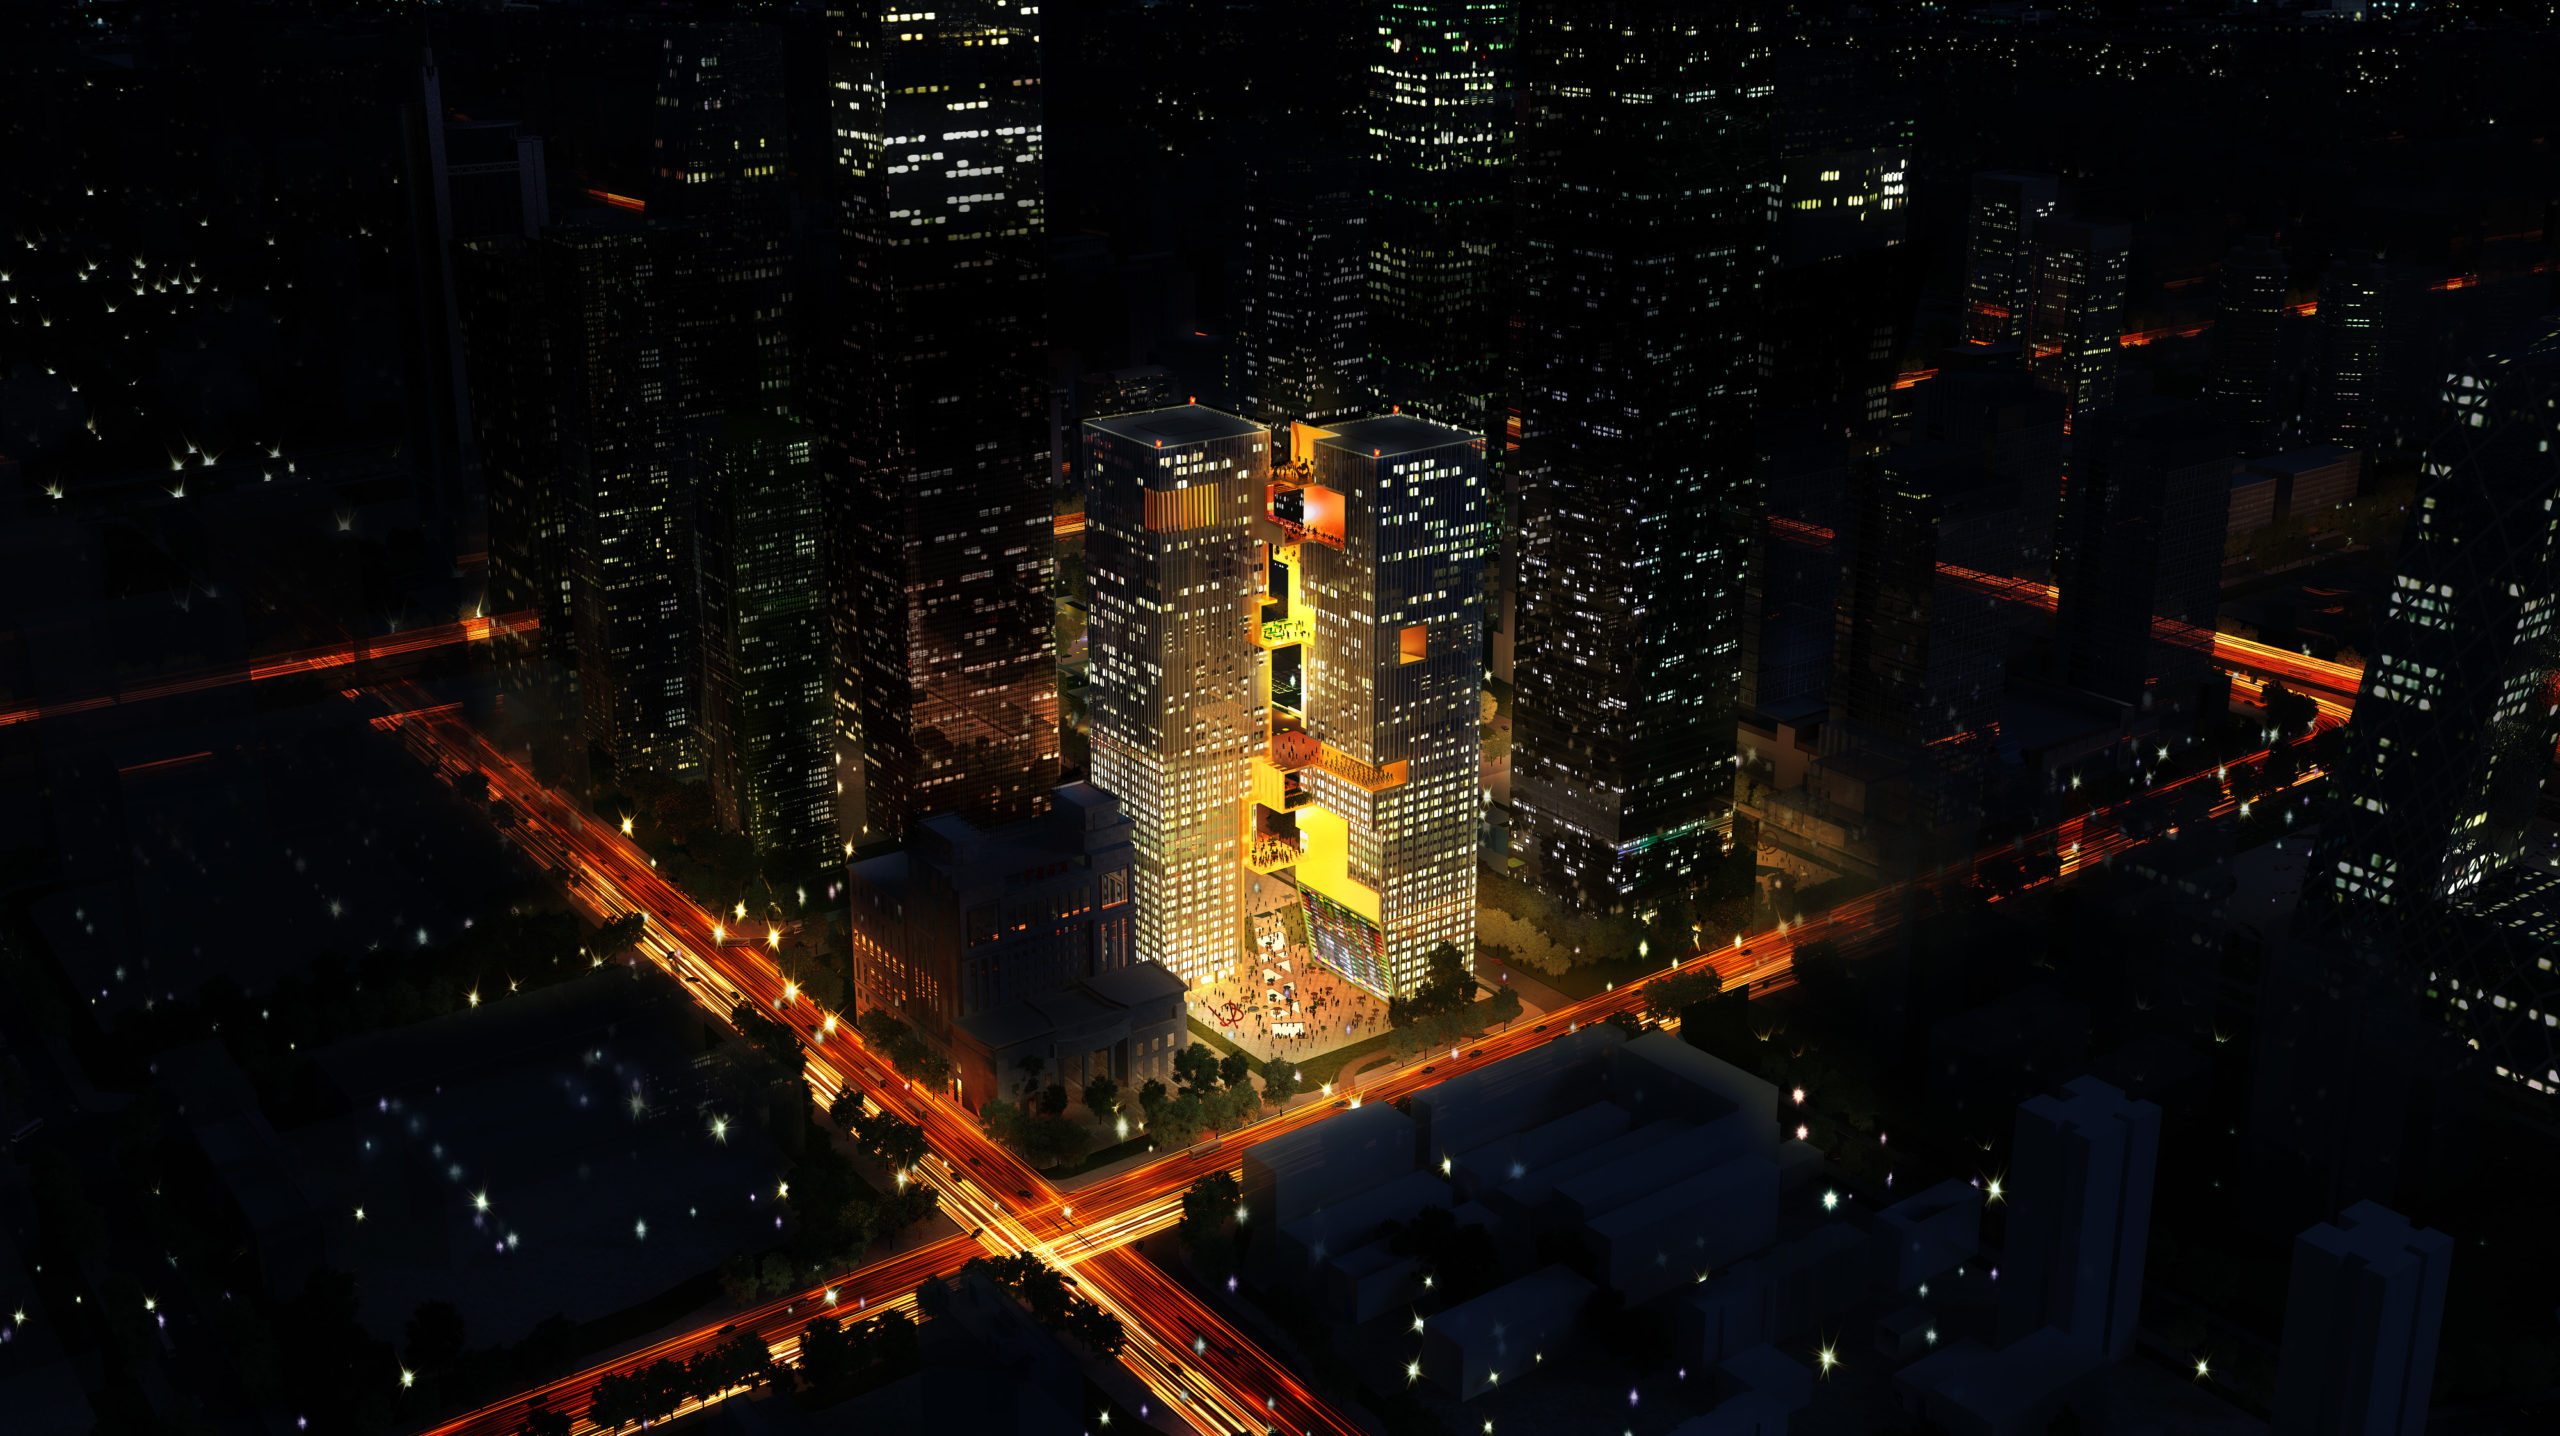 spatial practice architecture office Los Angeles Hong Kong ecospine twin towers cbd beijing china city night view